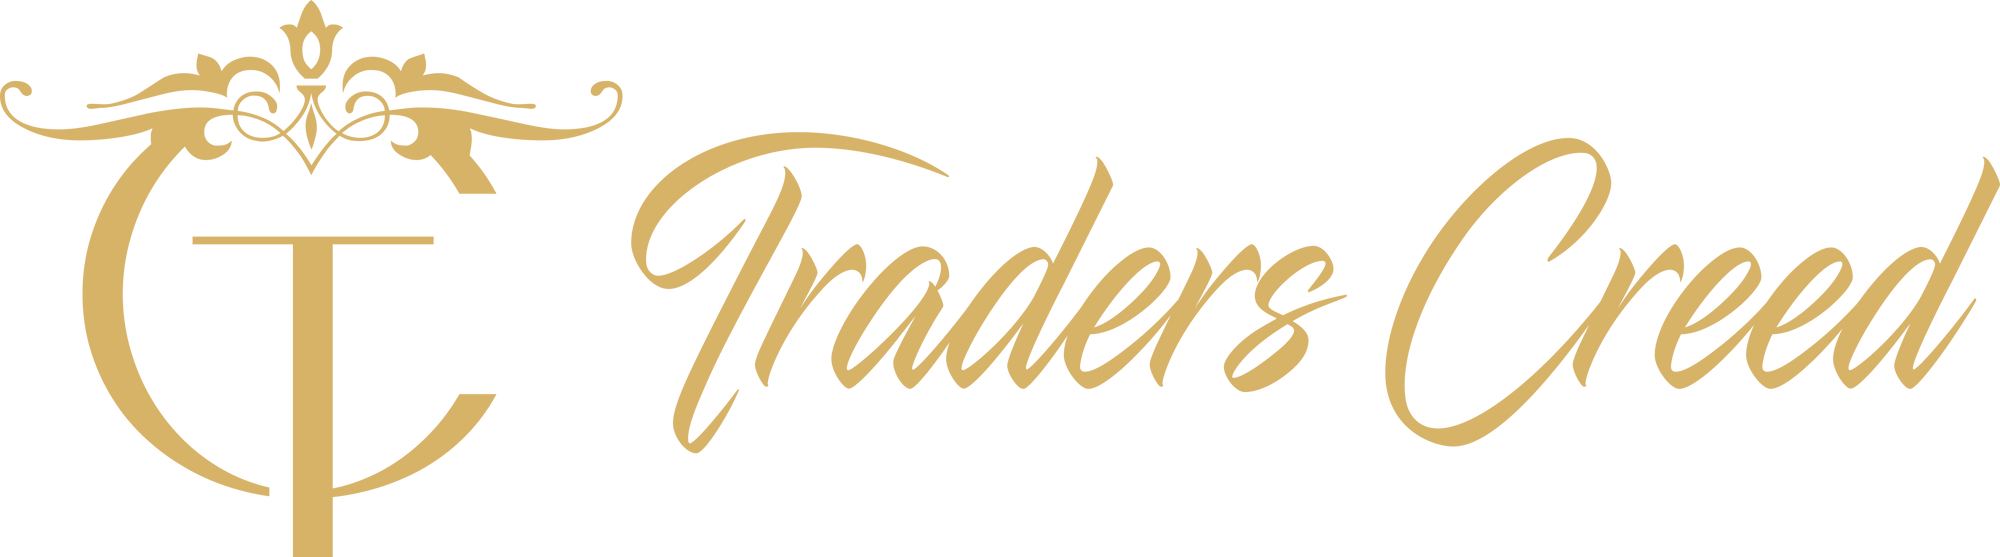 Traders Creed | Best Stock Market Apparel